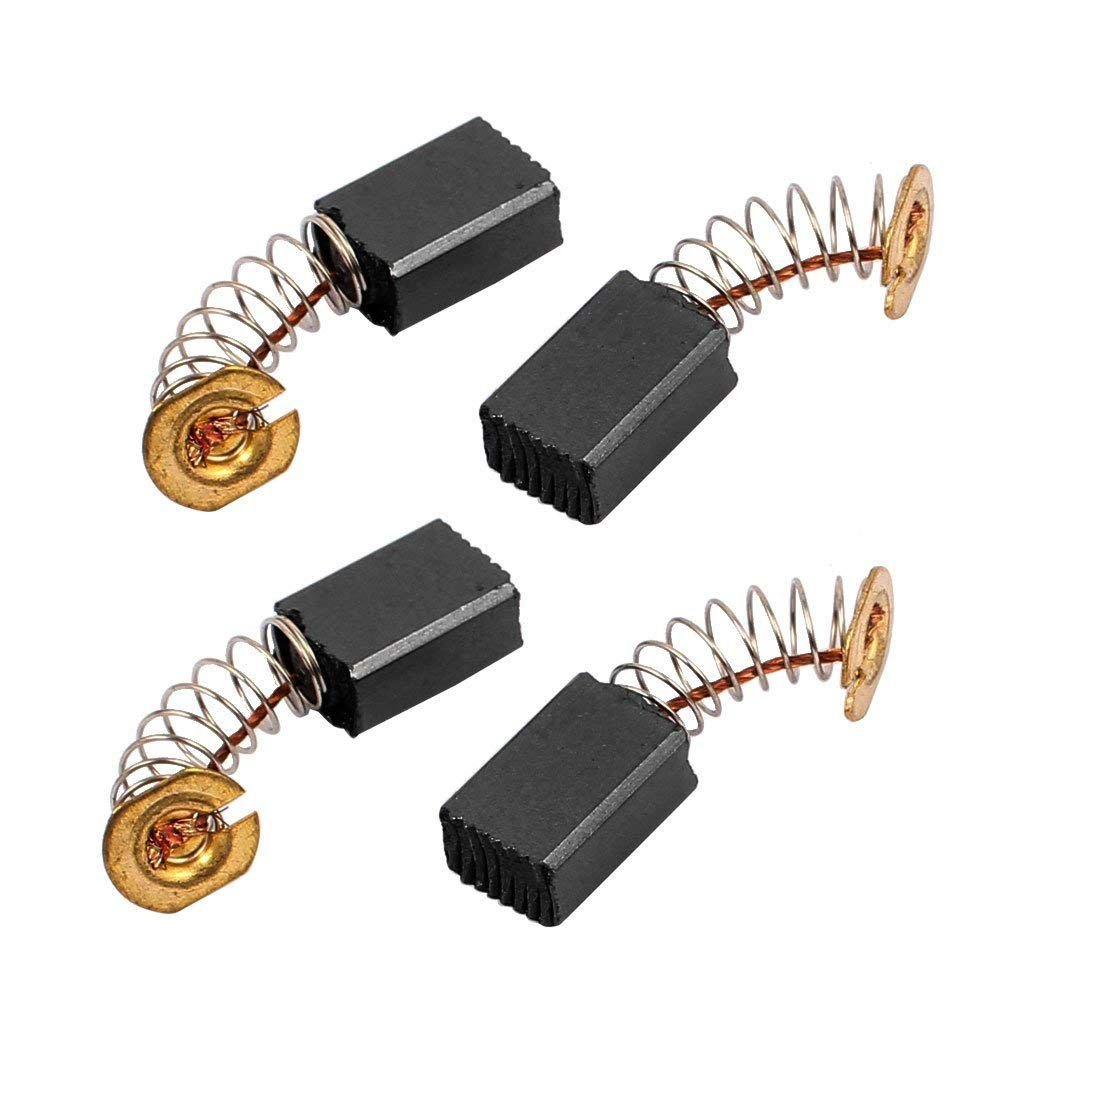 Nrpfell 2 pairs 12 x 9 x 6 mm coal brushes Electric tool for electric percussion motor